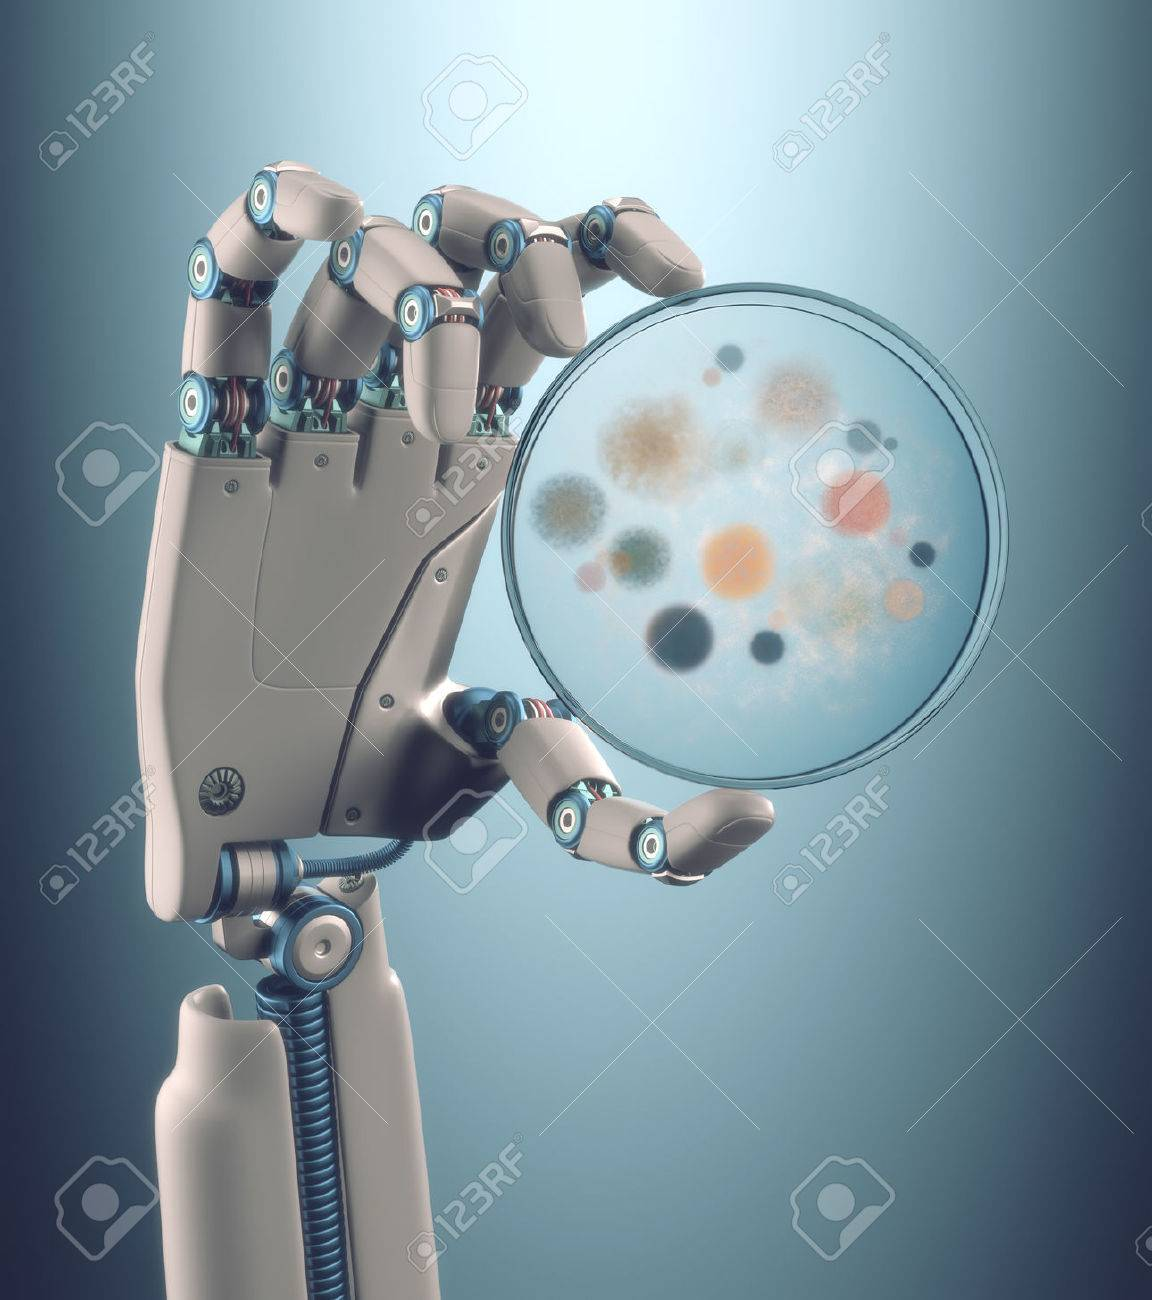 Robot hand holding a petri dish with colonies of bacteria and fungi. - 32882524